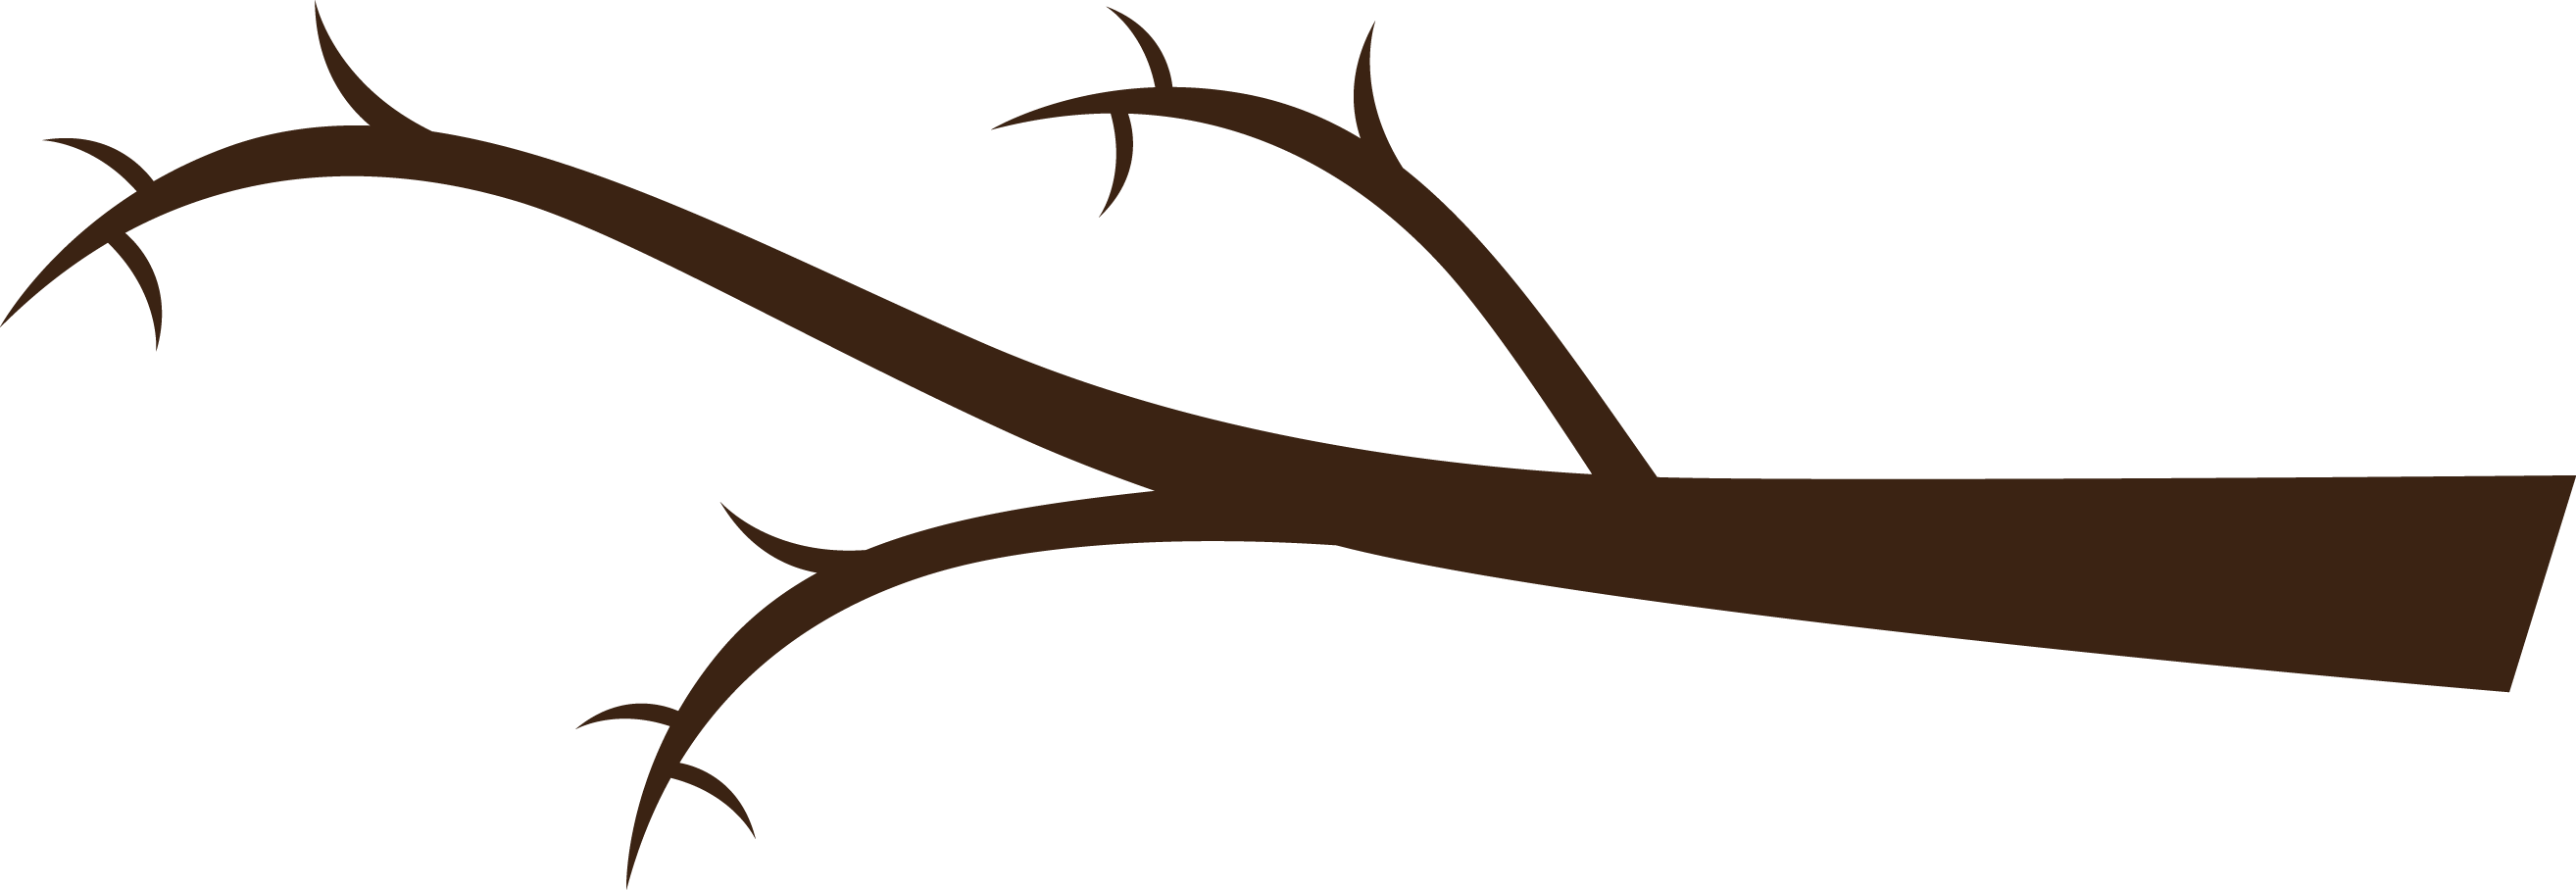 branch clipart png